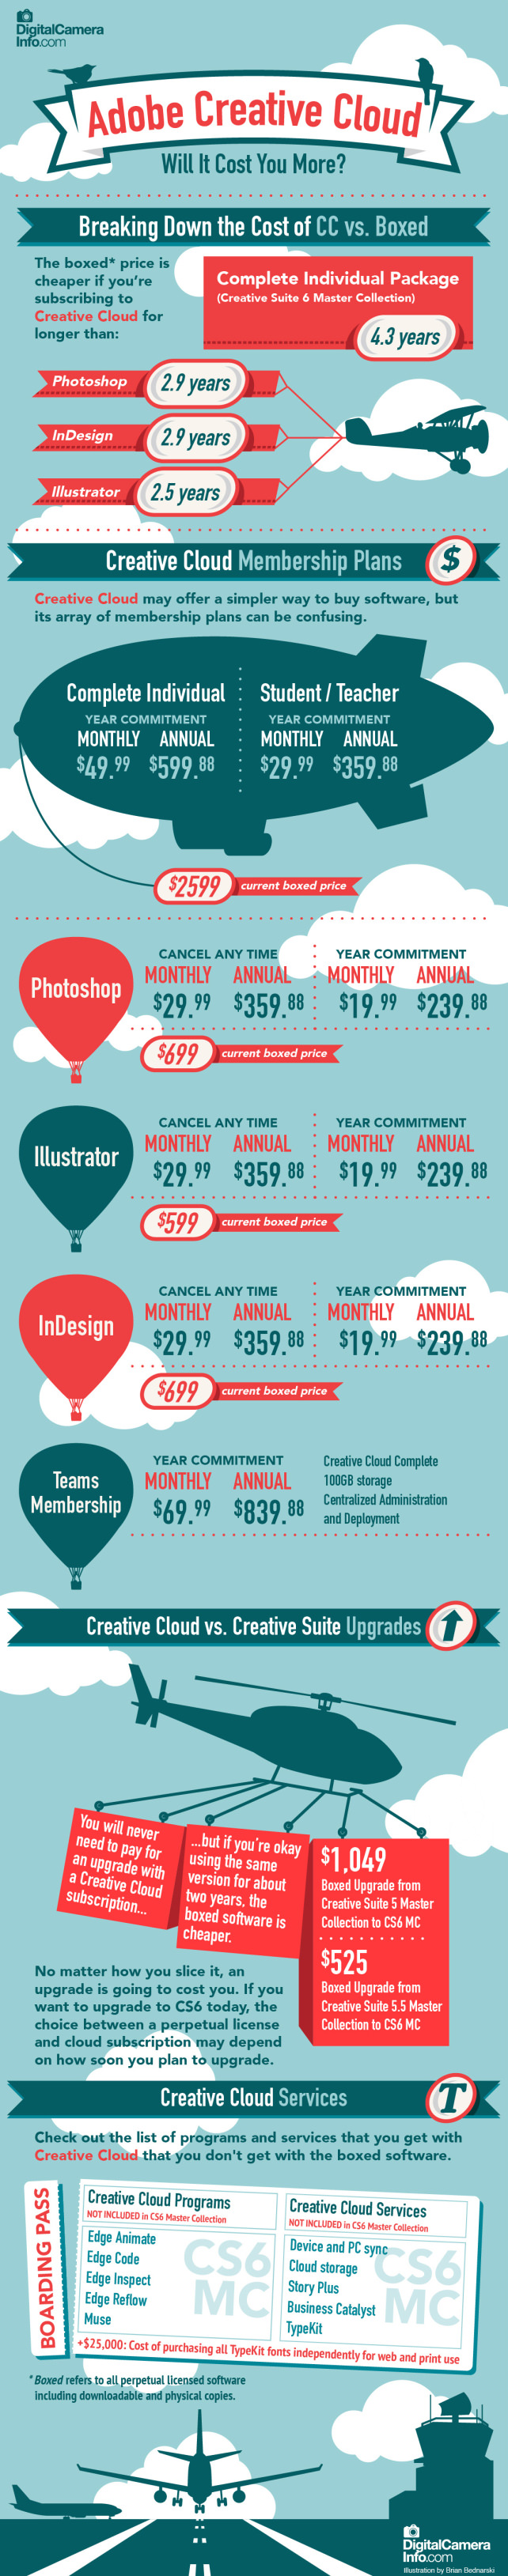 Infographic: Adobe Creative Cloud, Will It Cost You More? by DigitalCameraInfo.com